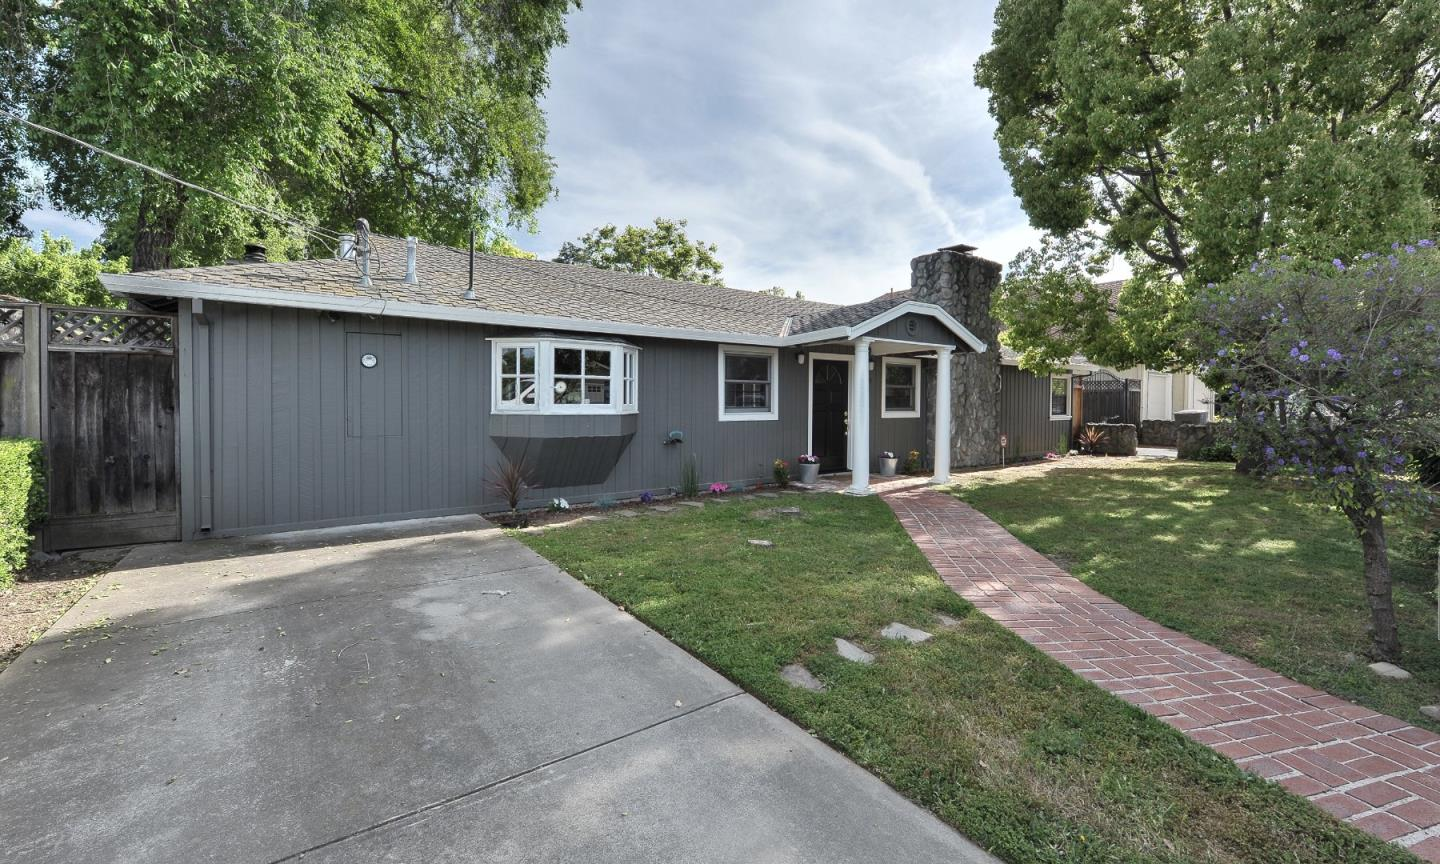 Additional photo for property listing at 1056 Audrey Ave  CAMPBELL, CALIFORNIA 95008